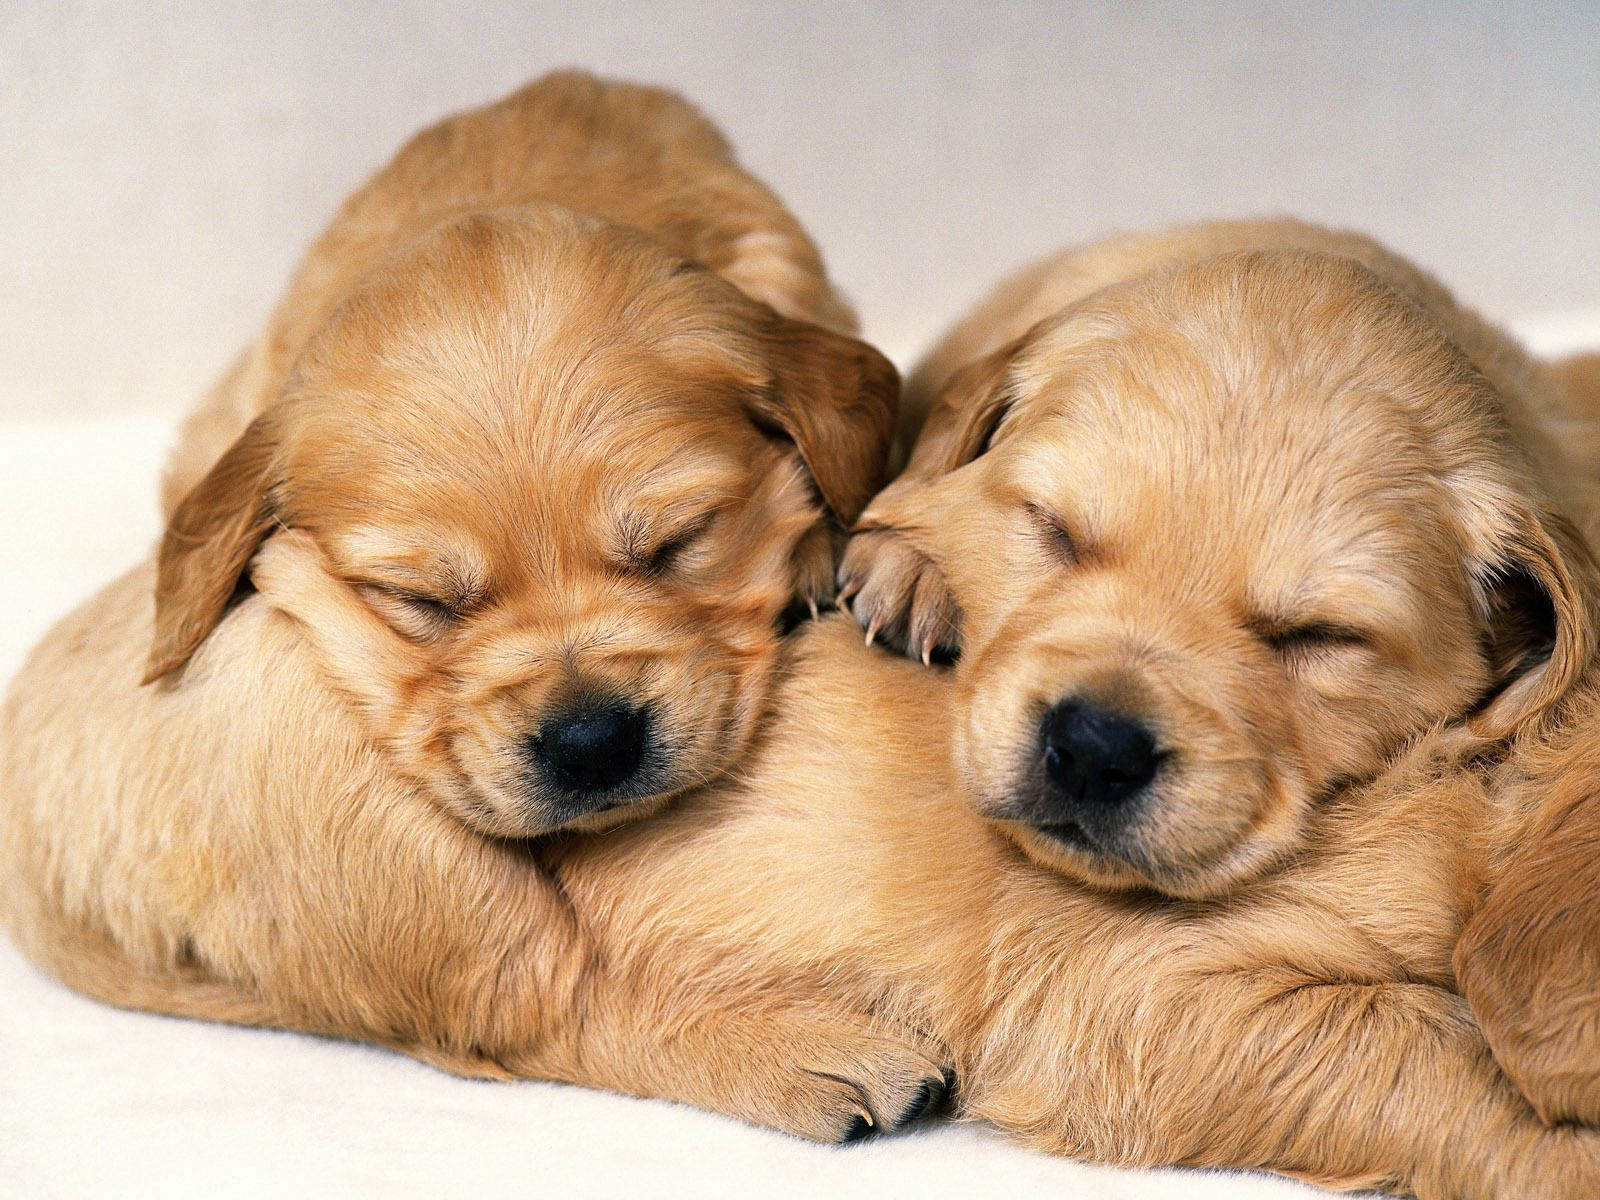 138617 download wallpaper Animals, Puppies, Dog, Couple, Pair, Redhead, Sleep screensavers and pictures for free